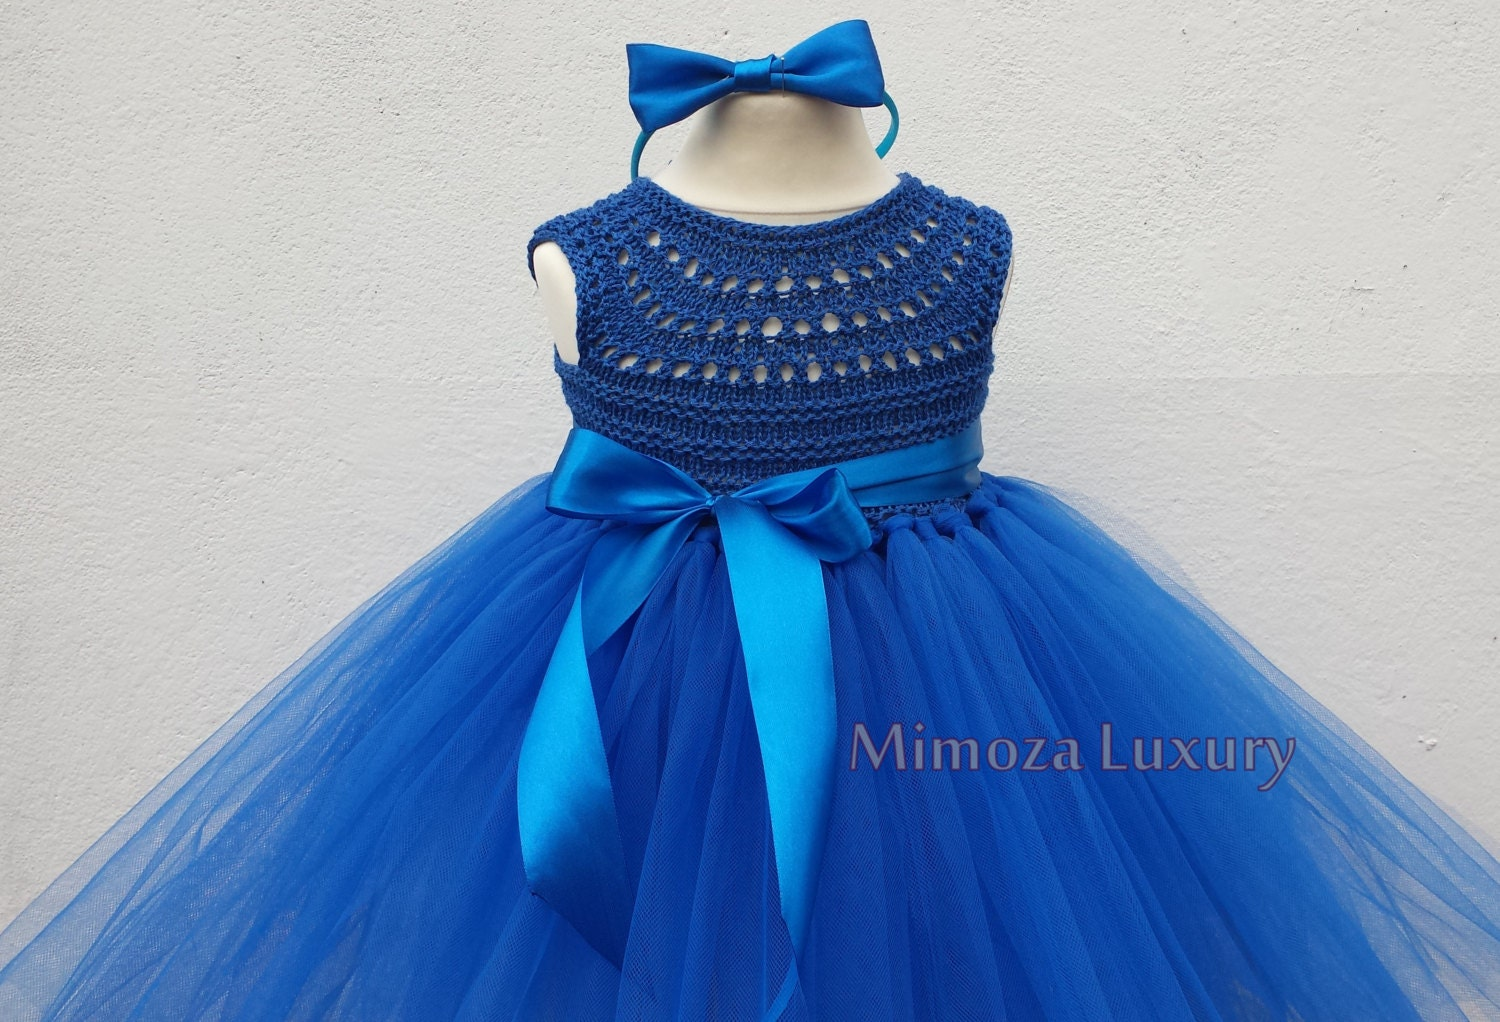 90bc3090d175 Royal Blue Flower girl dress, Peacock blue tutu dress, royal blue  bridesmaid dress, royal blue princess dress, crochet top tulle dress.  gallery photo ...